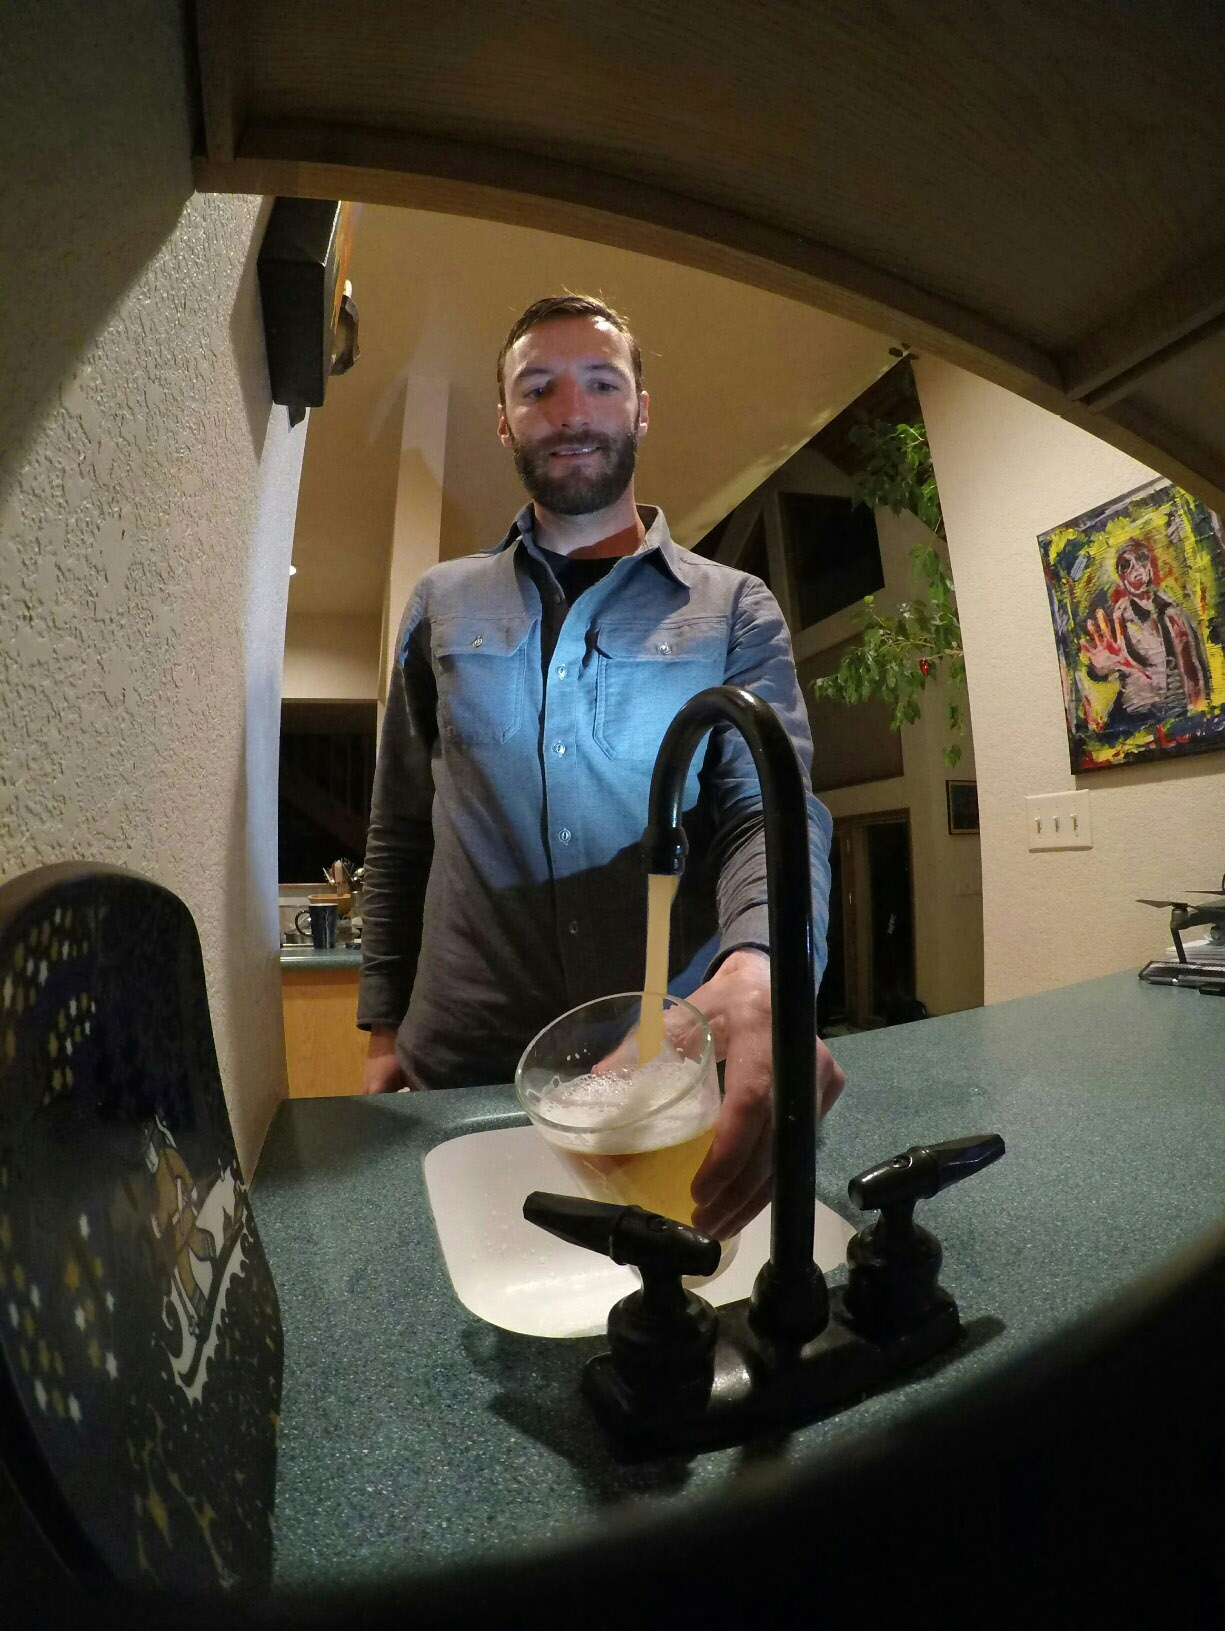 City Of Golden and Coors Renew Home Taps Agreement